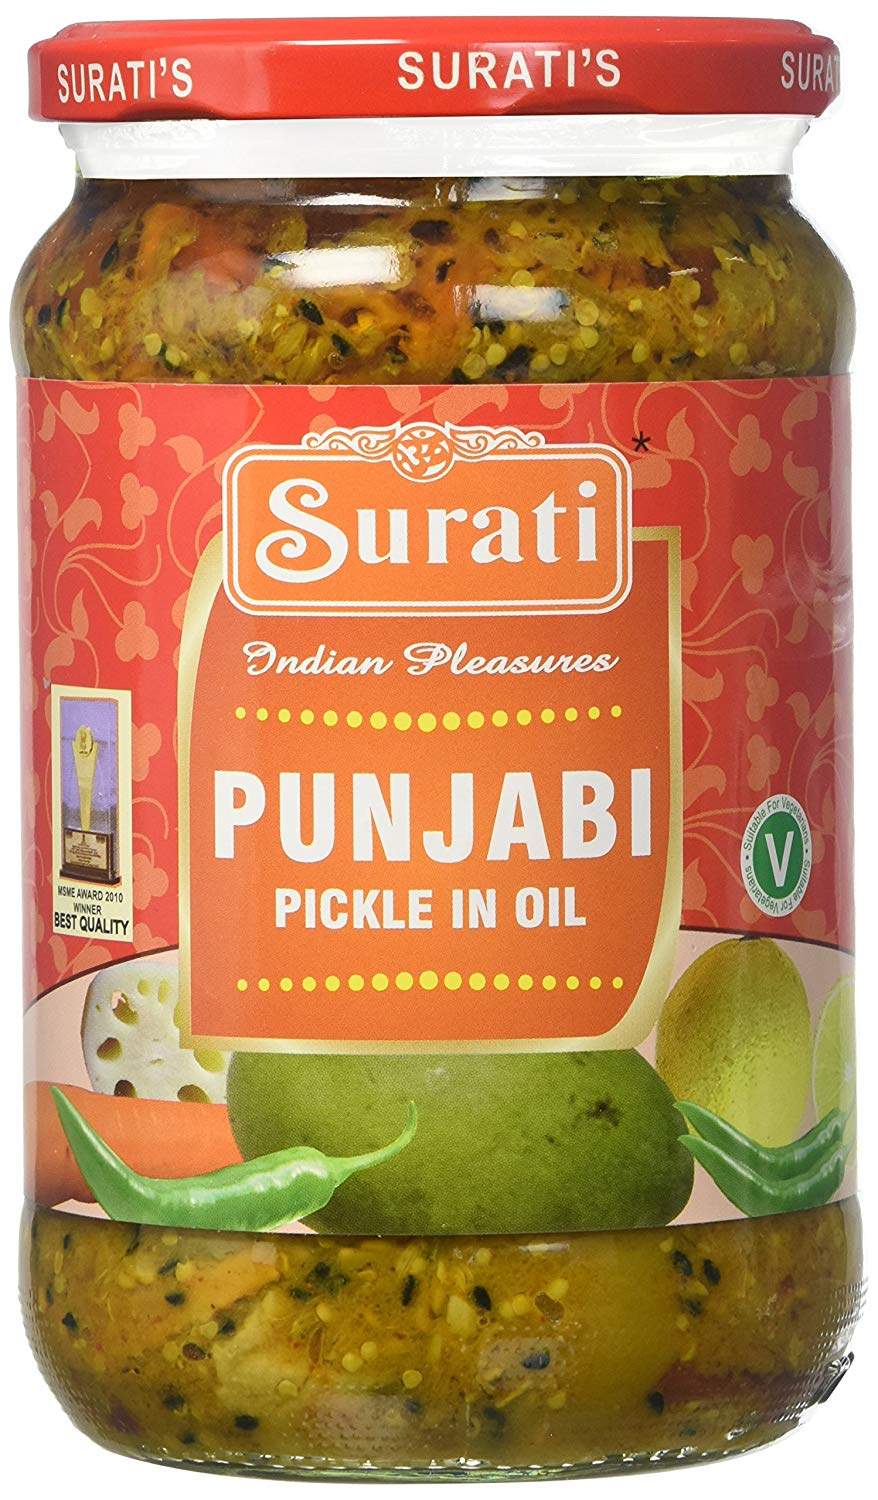 Punjabi Pickle in Oil